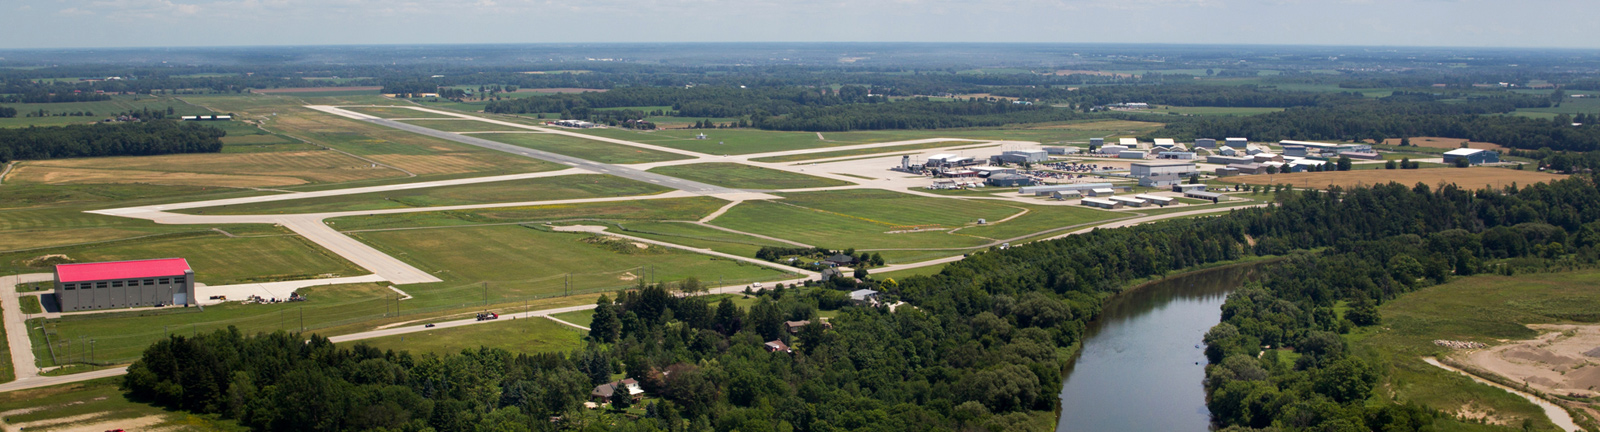 Aerial view of the region of waterloo airport